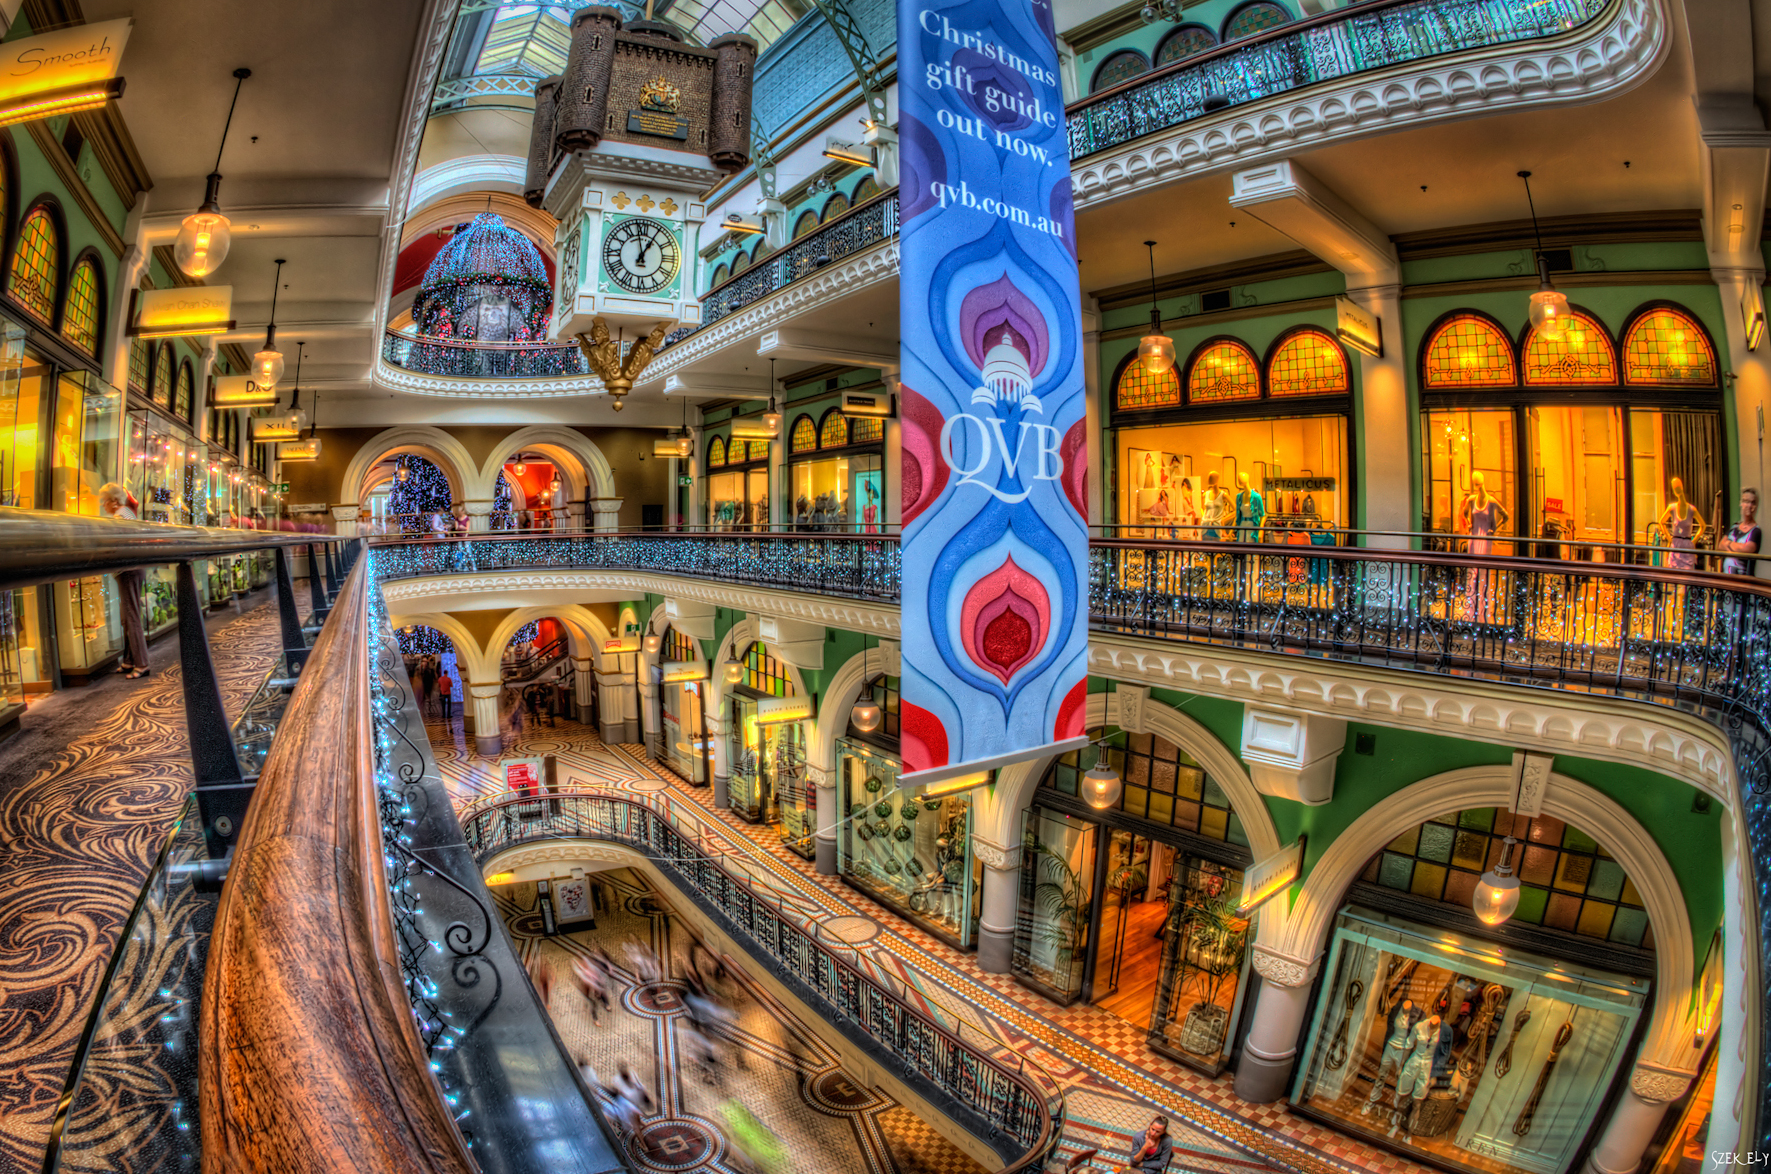 File:queen Victoria Building